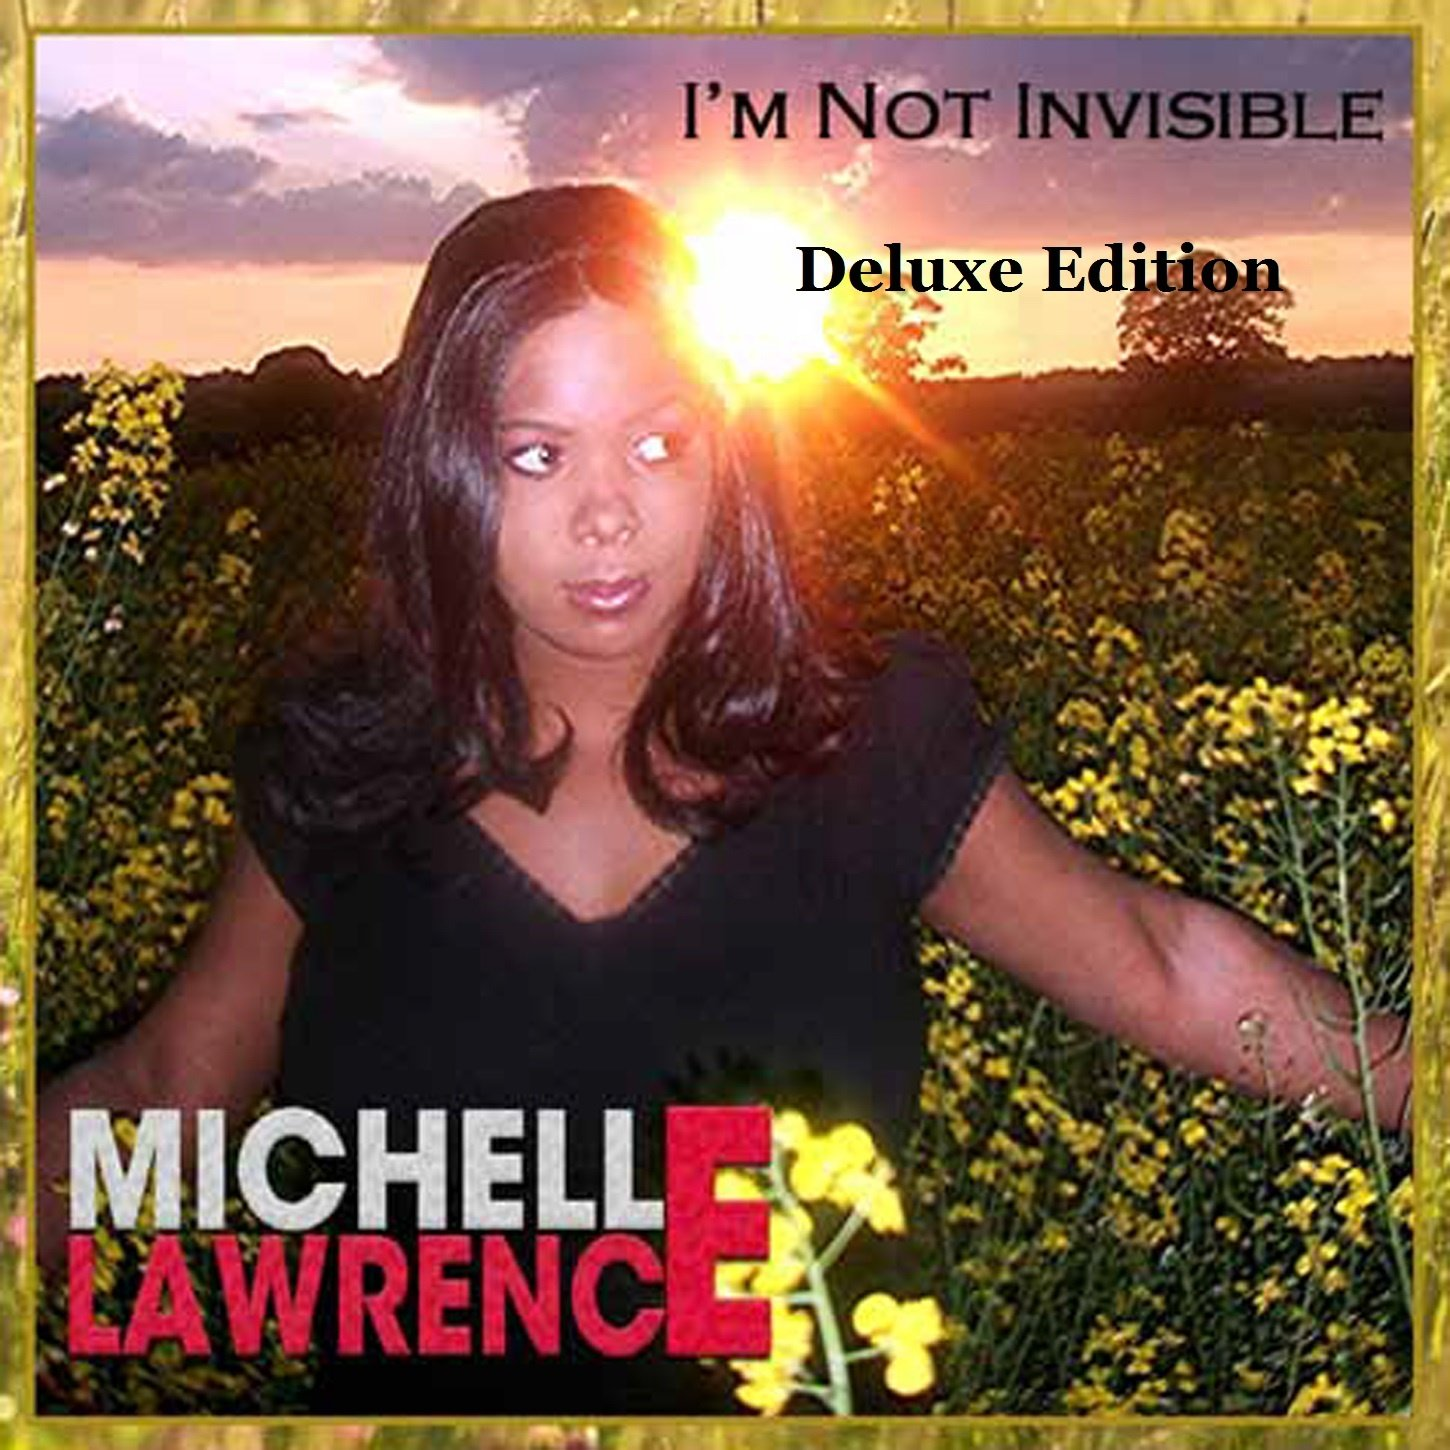 I'm Not Invisible Out Now On ITUNES